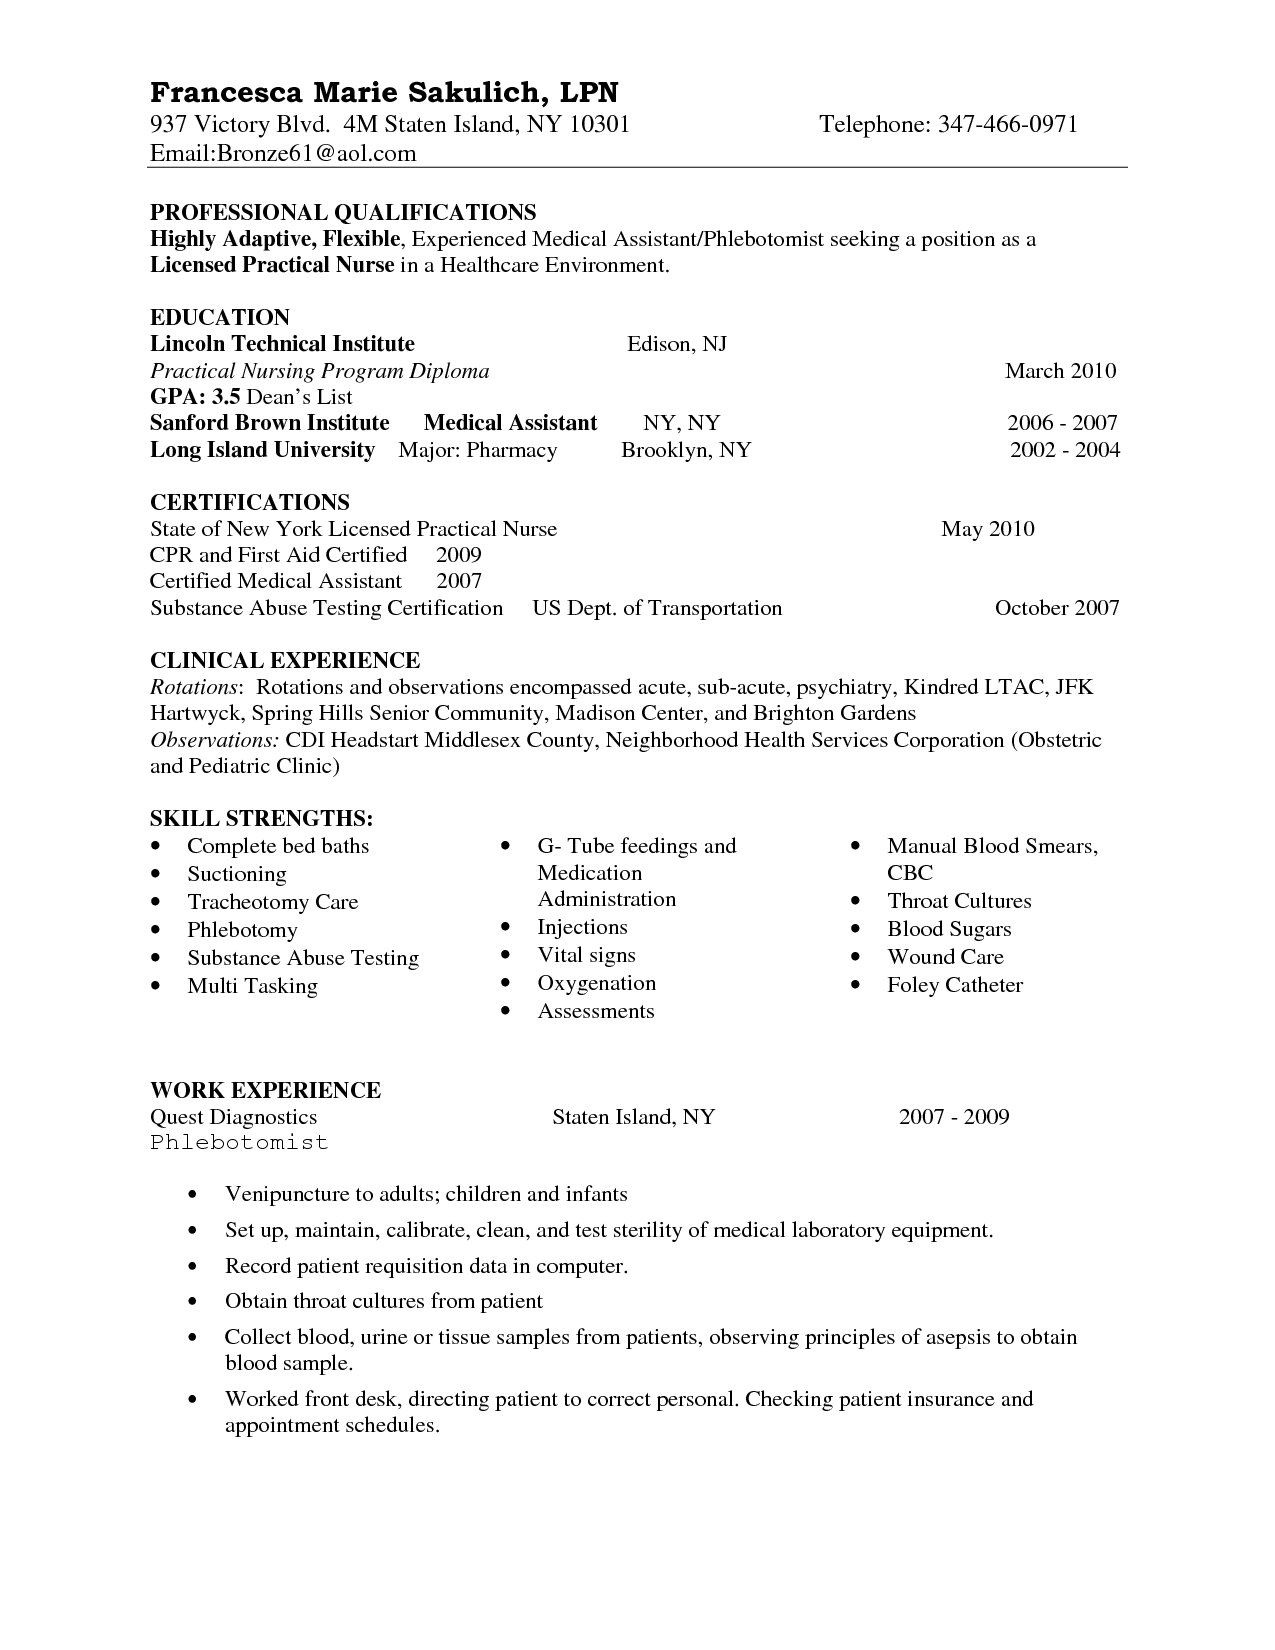 Examples Of Nursing Resumes Entry Level Lpn Resume Sample  Nursing  Pinterest  Nursing